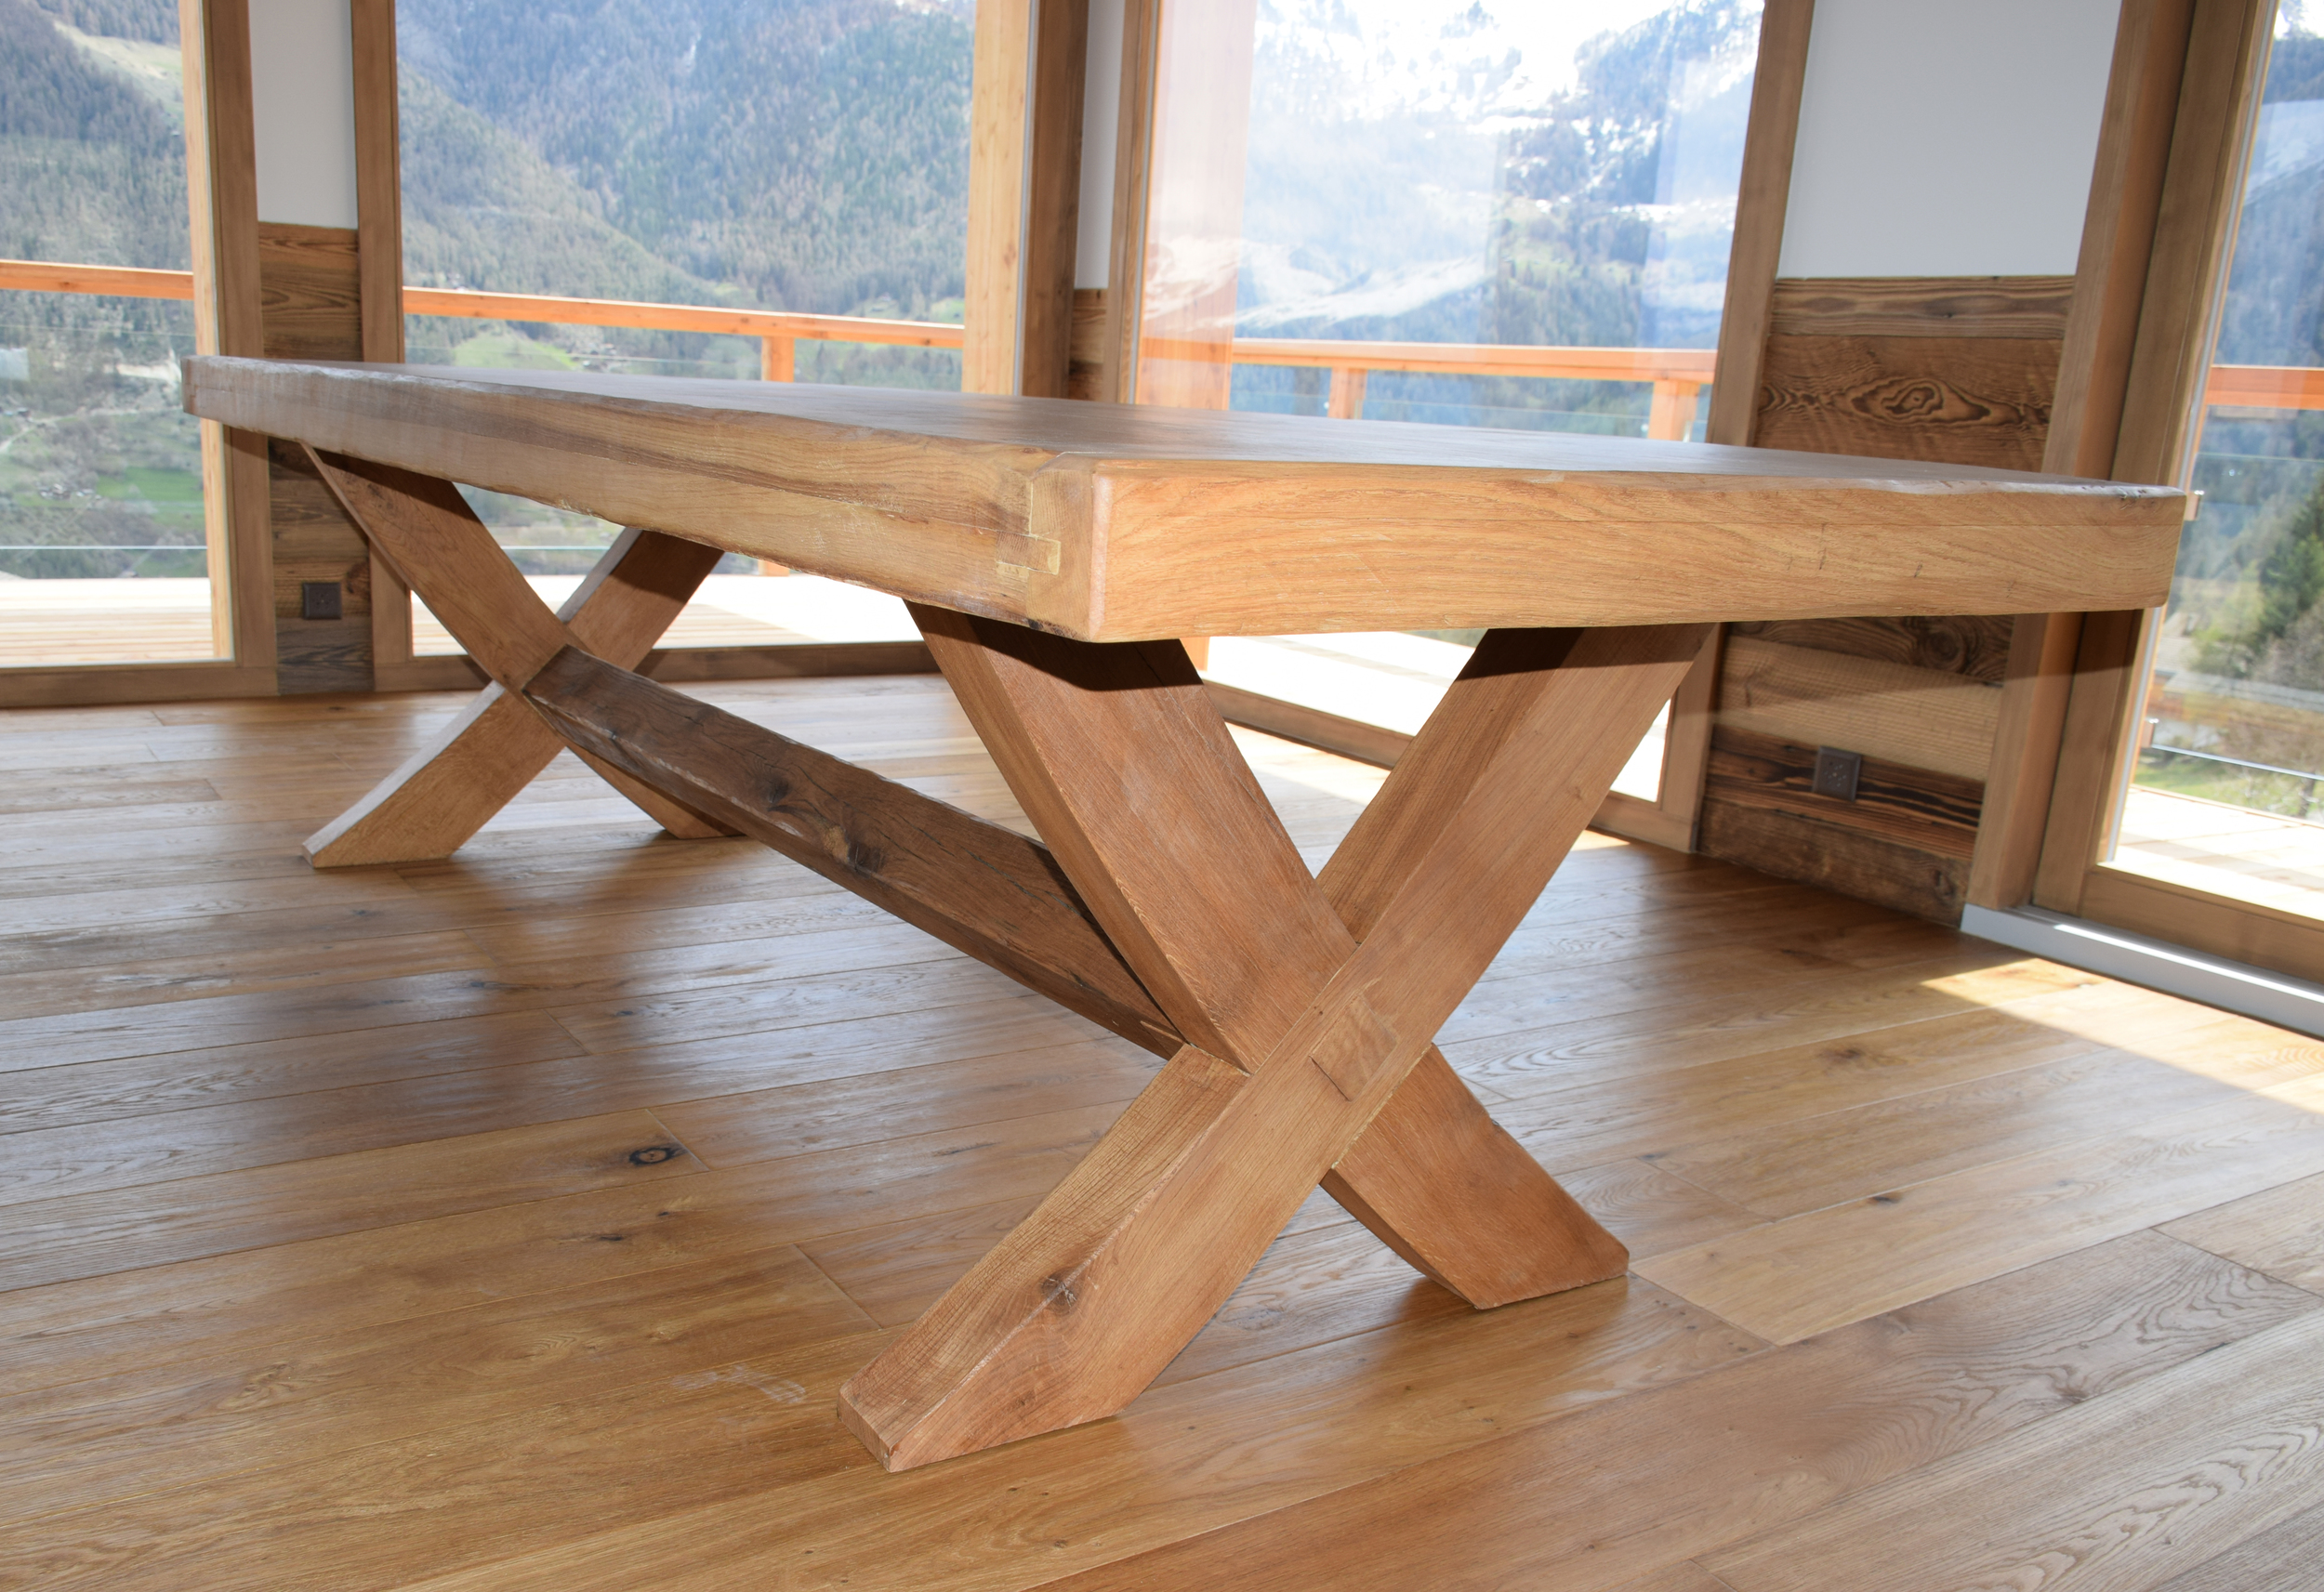 Bespoke Oak & Iron X leg table in Switzerland